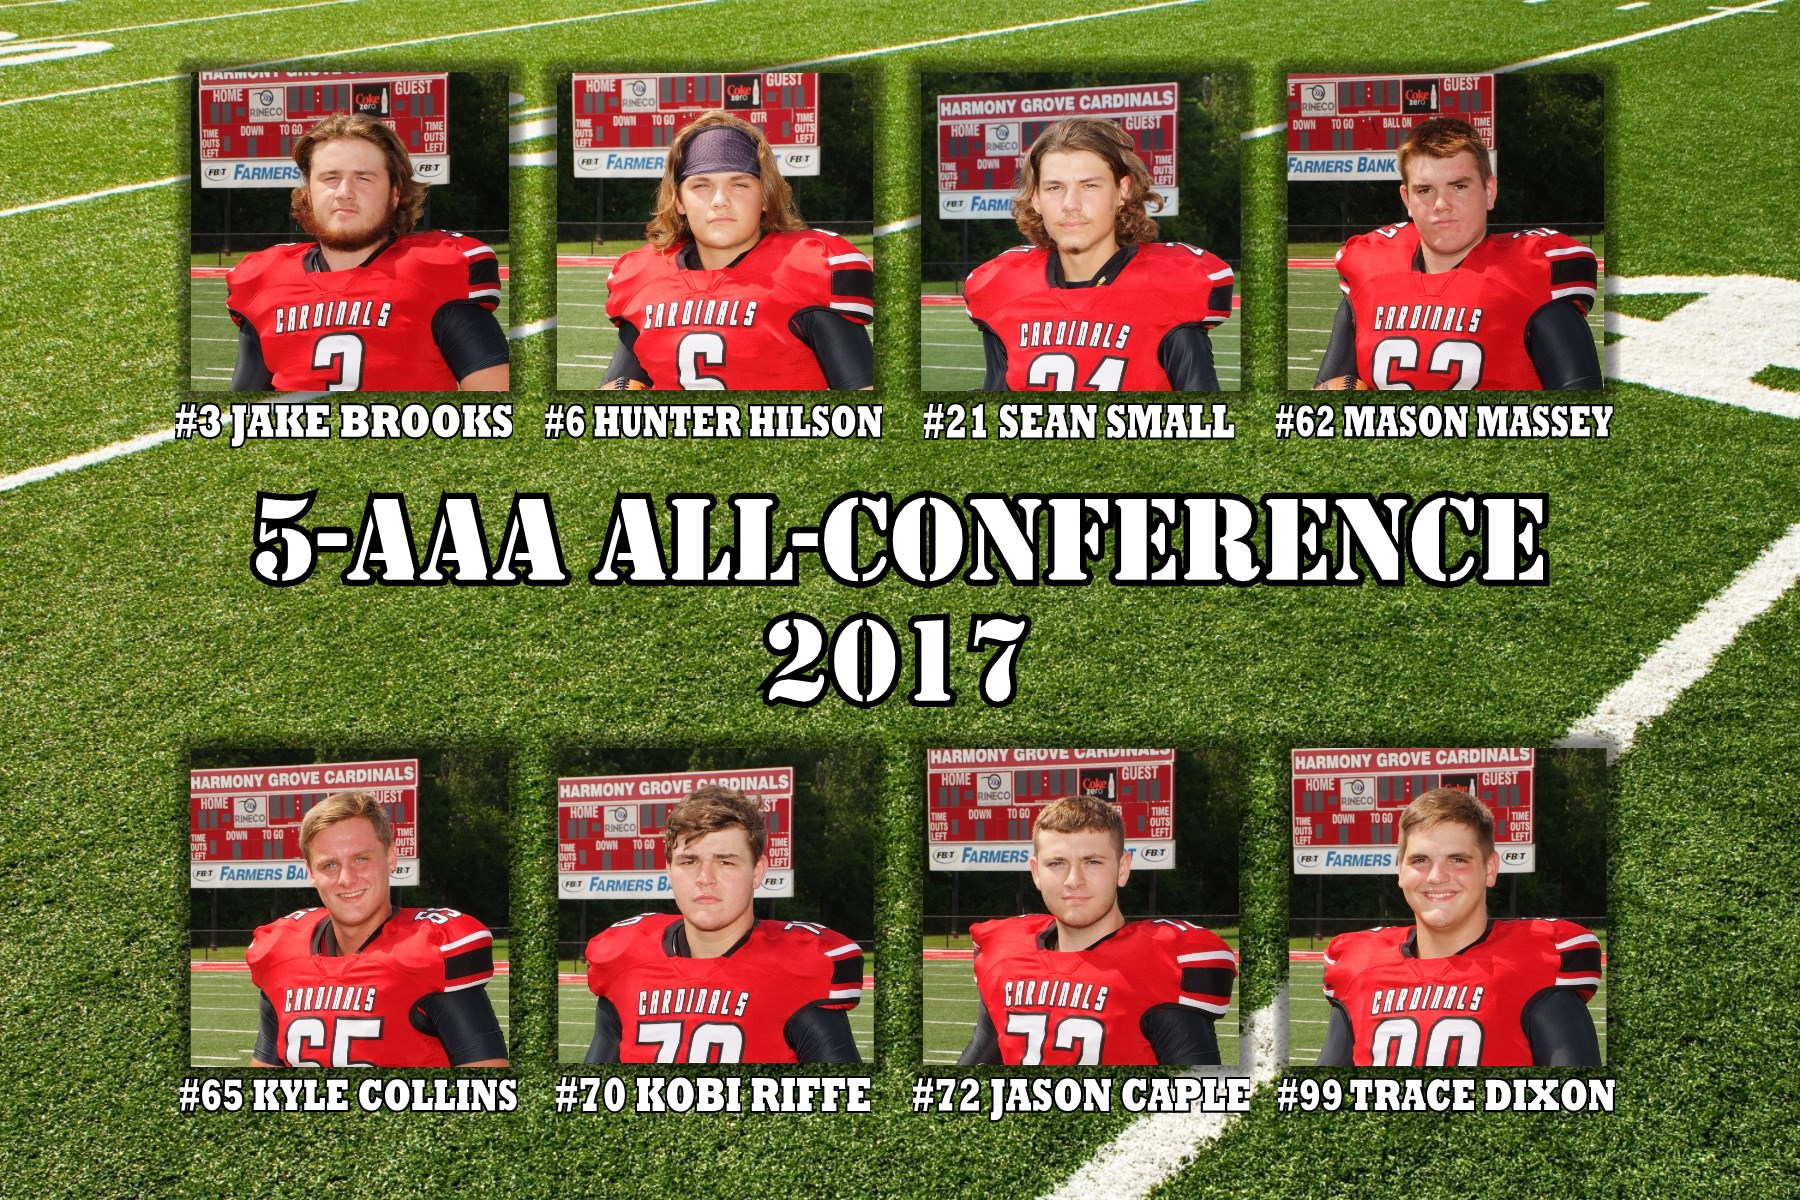 2017 5-AAA All-Conference